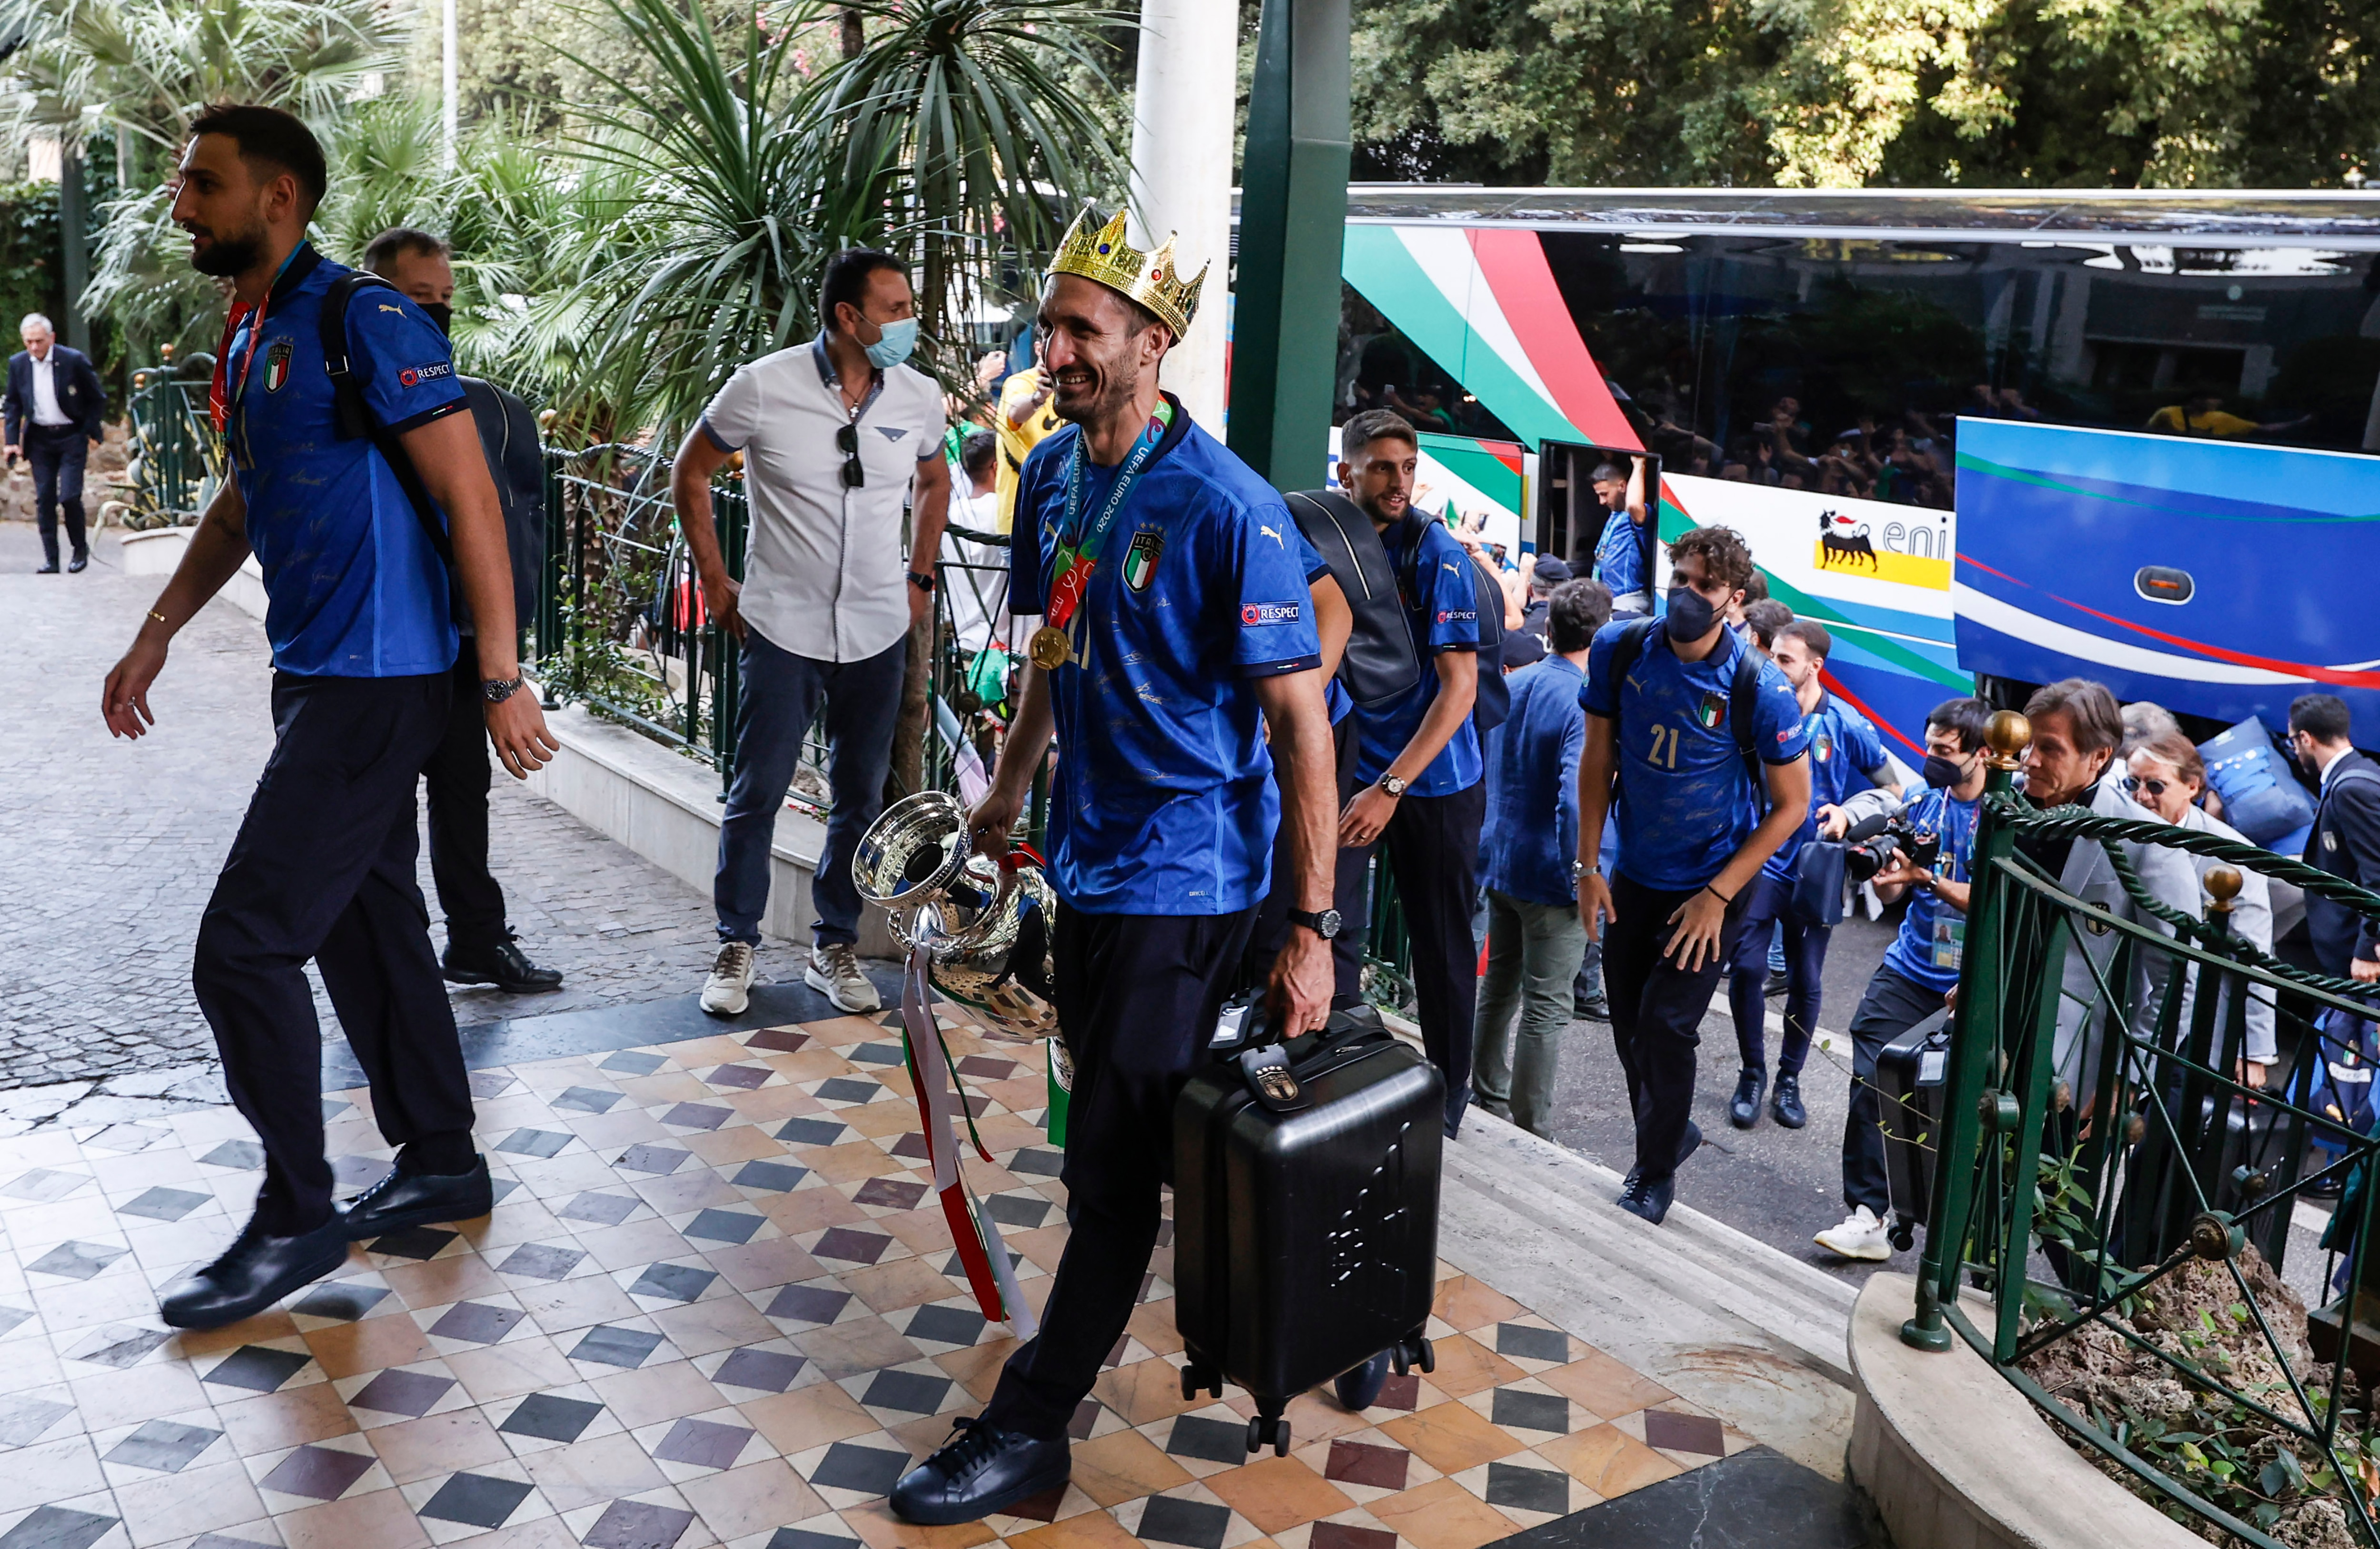 Euro 2020- Italy's captain Giorgio Chiellini, wearing a crown and holding the trophy, and his teammates arrive at a hotel after returning from London, in Rome.(AP)